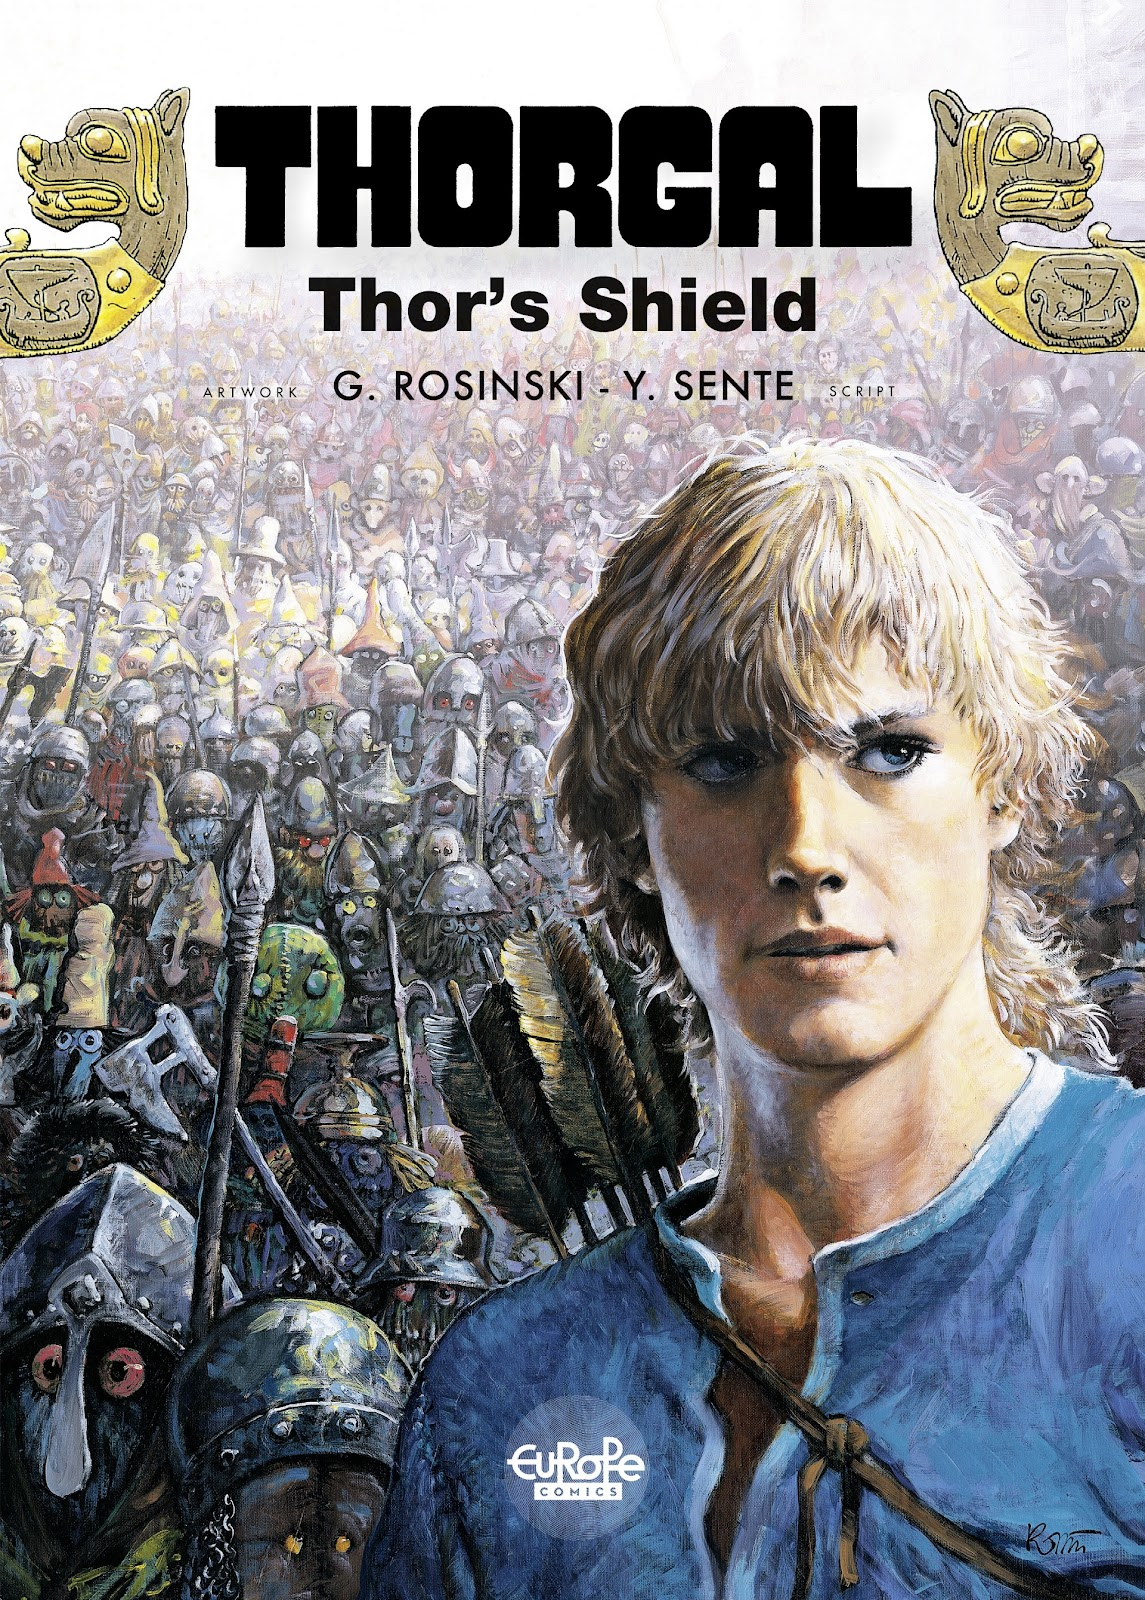 Read online Thorgal comic -  Issue #23 - 1